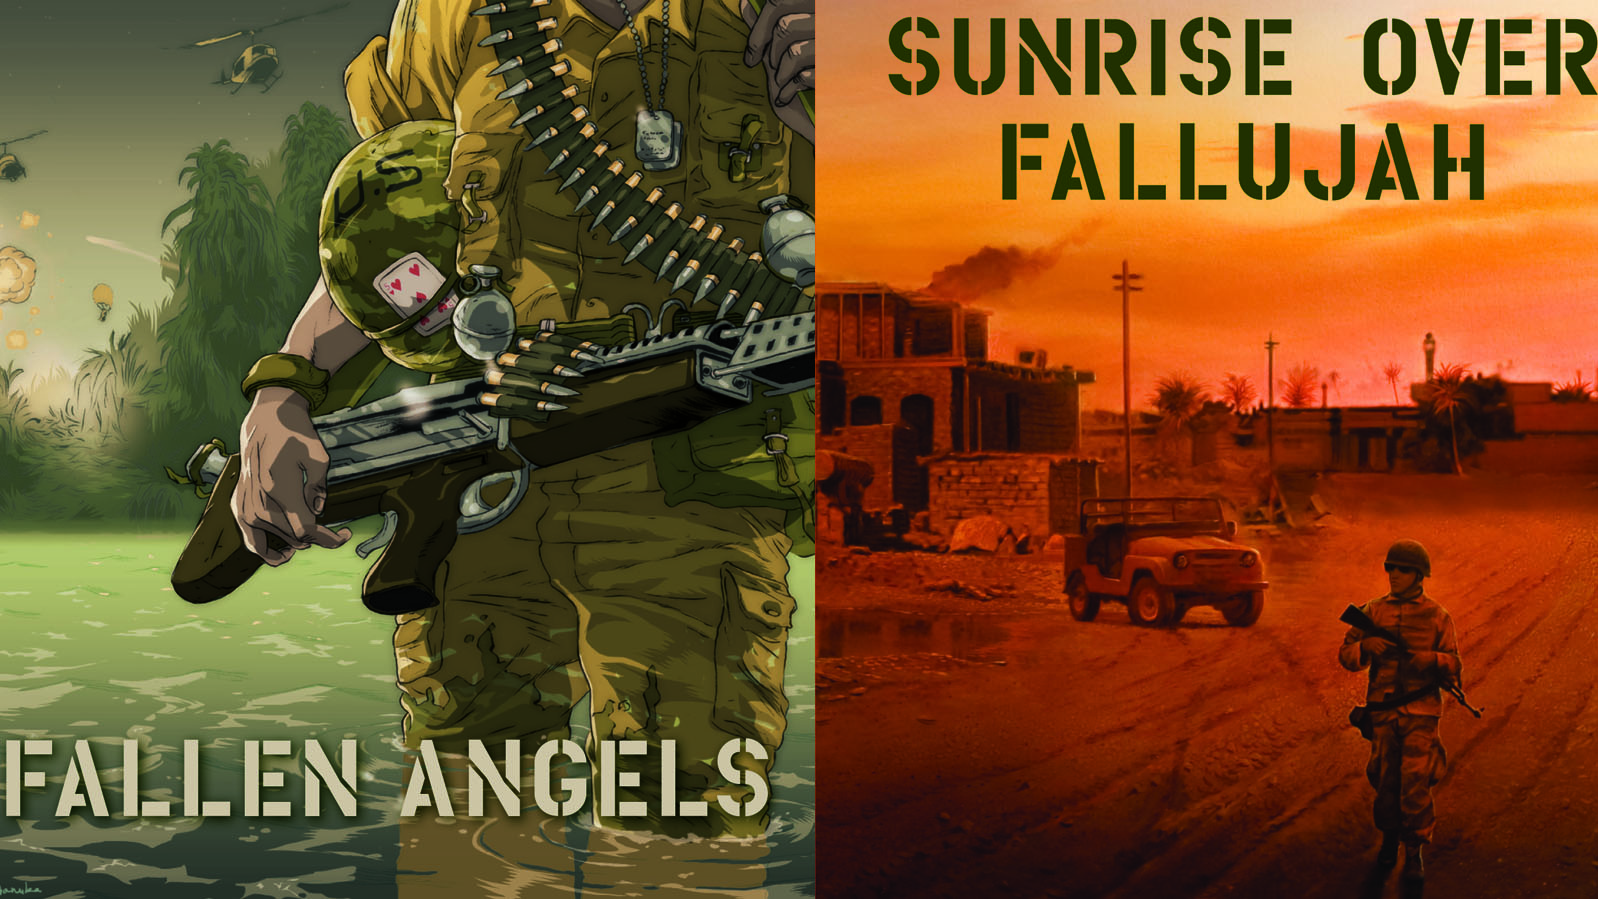 discussion guide for fallen angels and sunrise over fallujah discussion guide for fallen angels and sunrise over fallujah scholastic